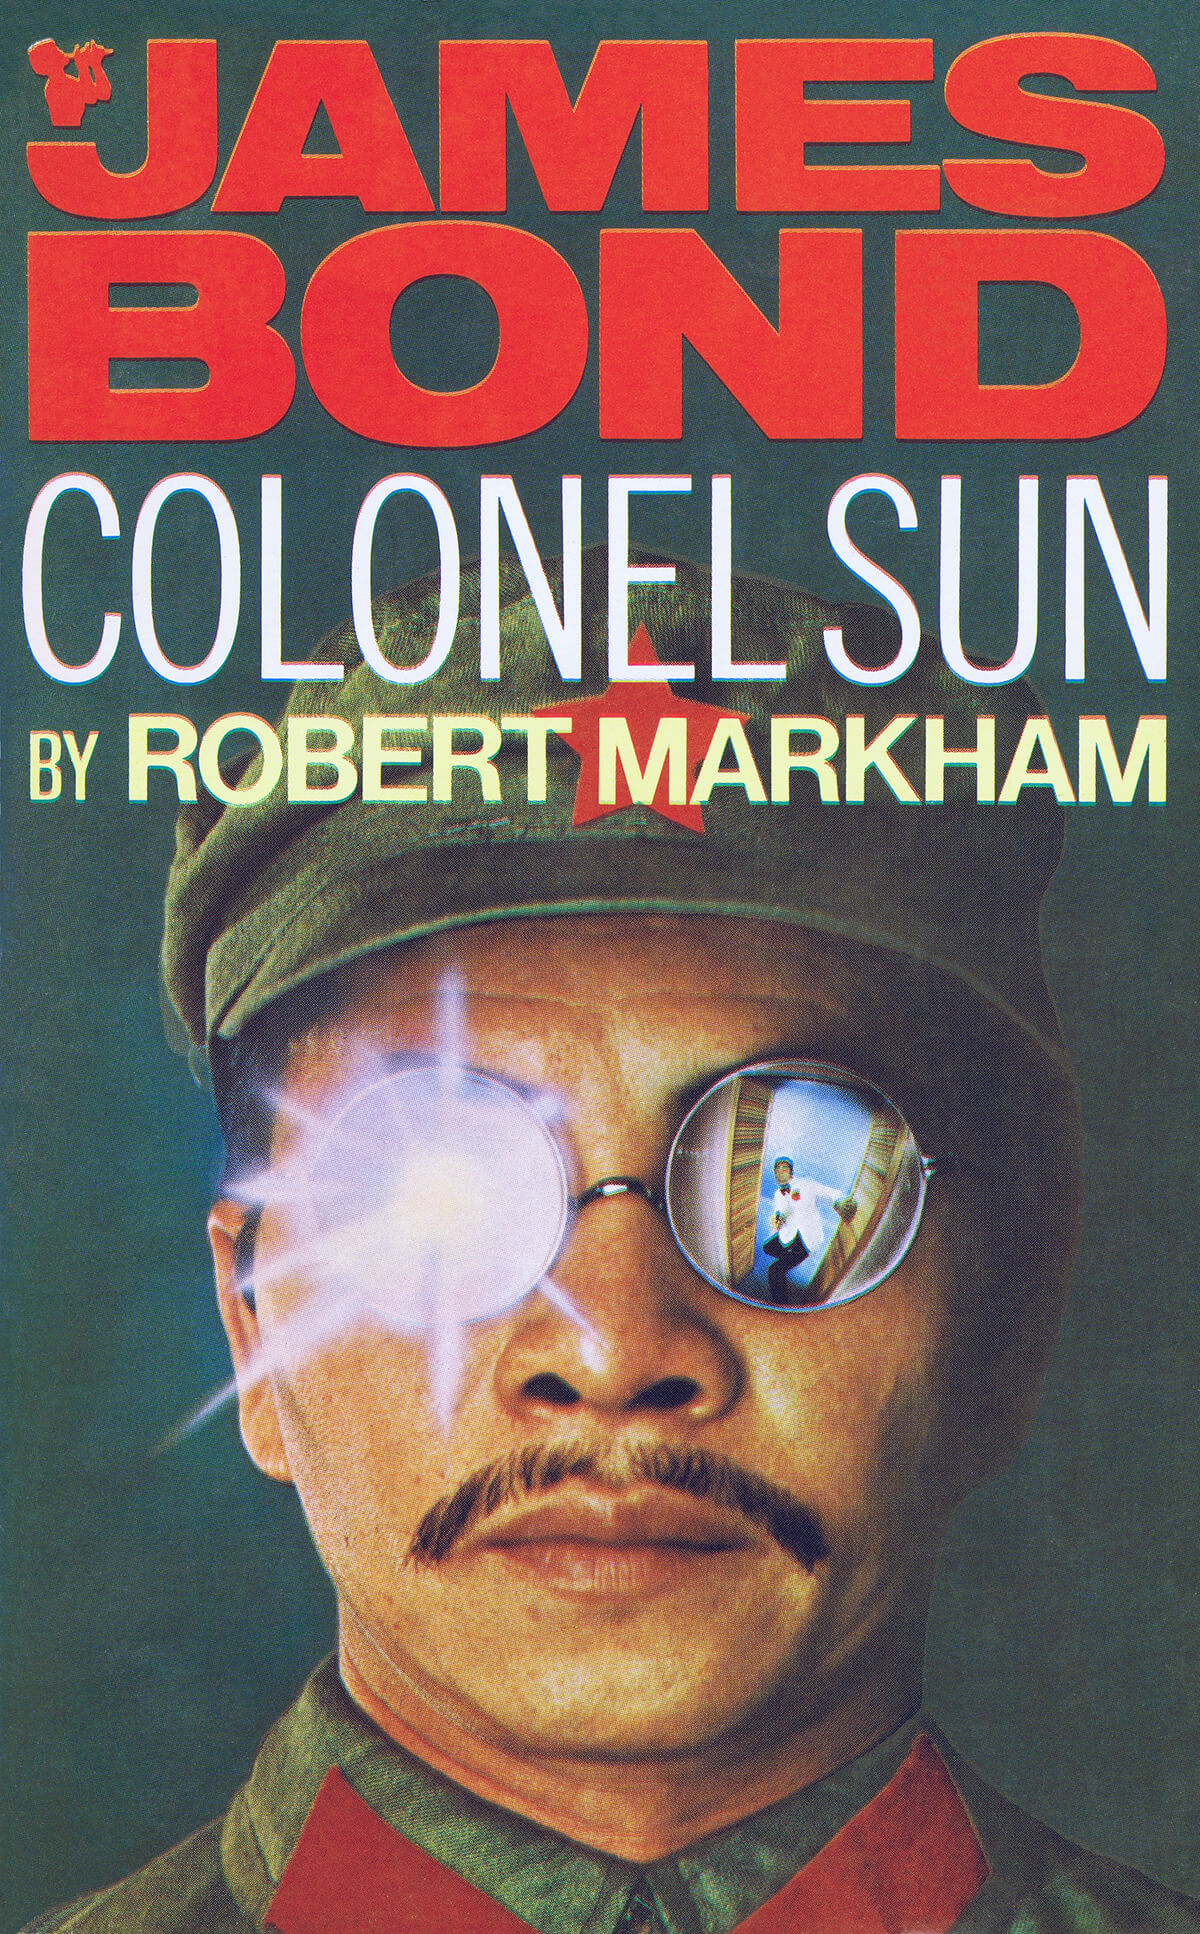 Colonel Sun by Robert Markham